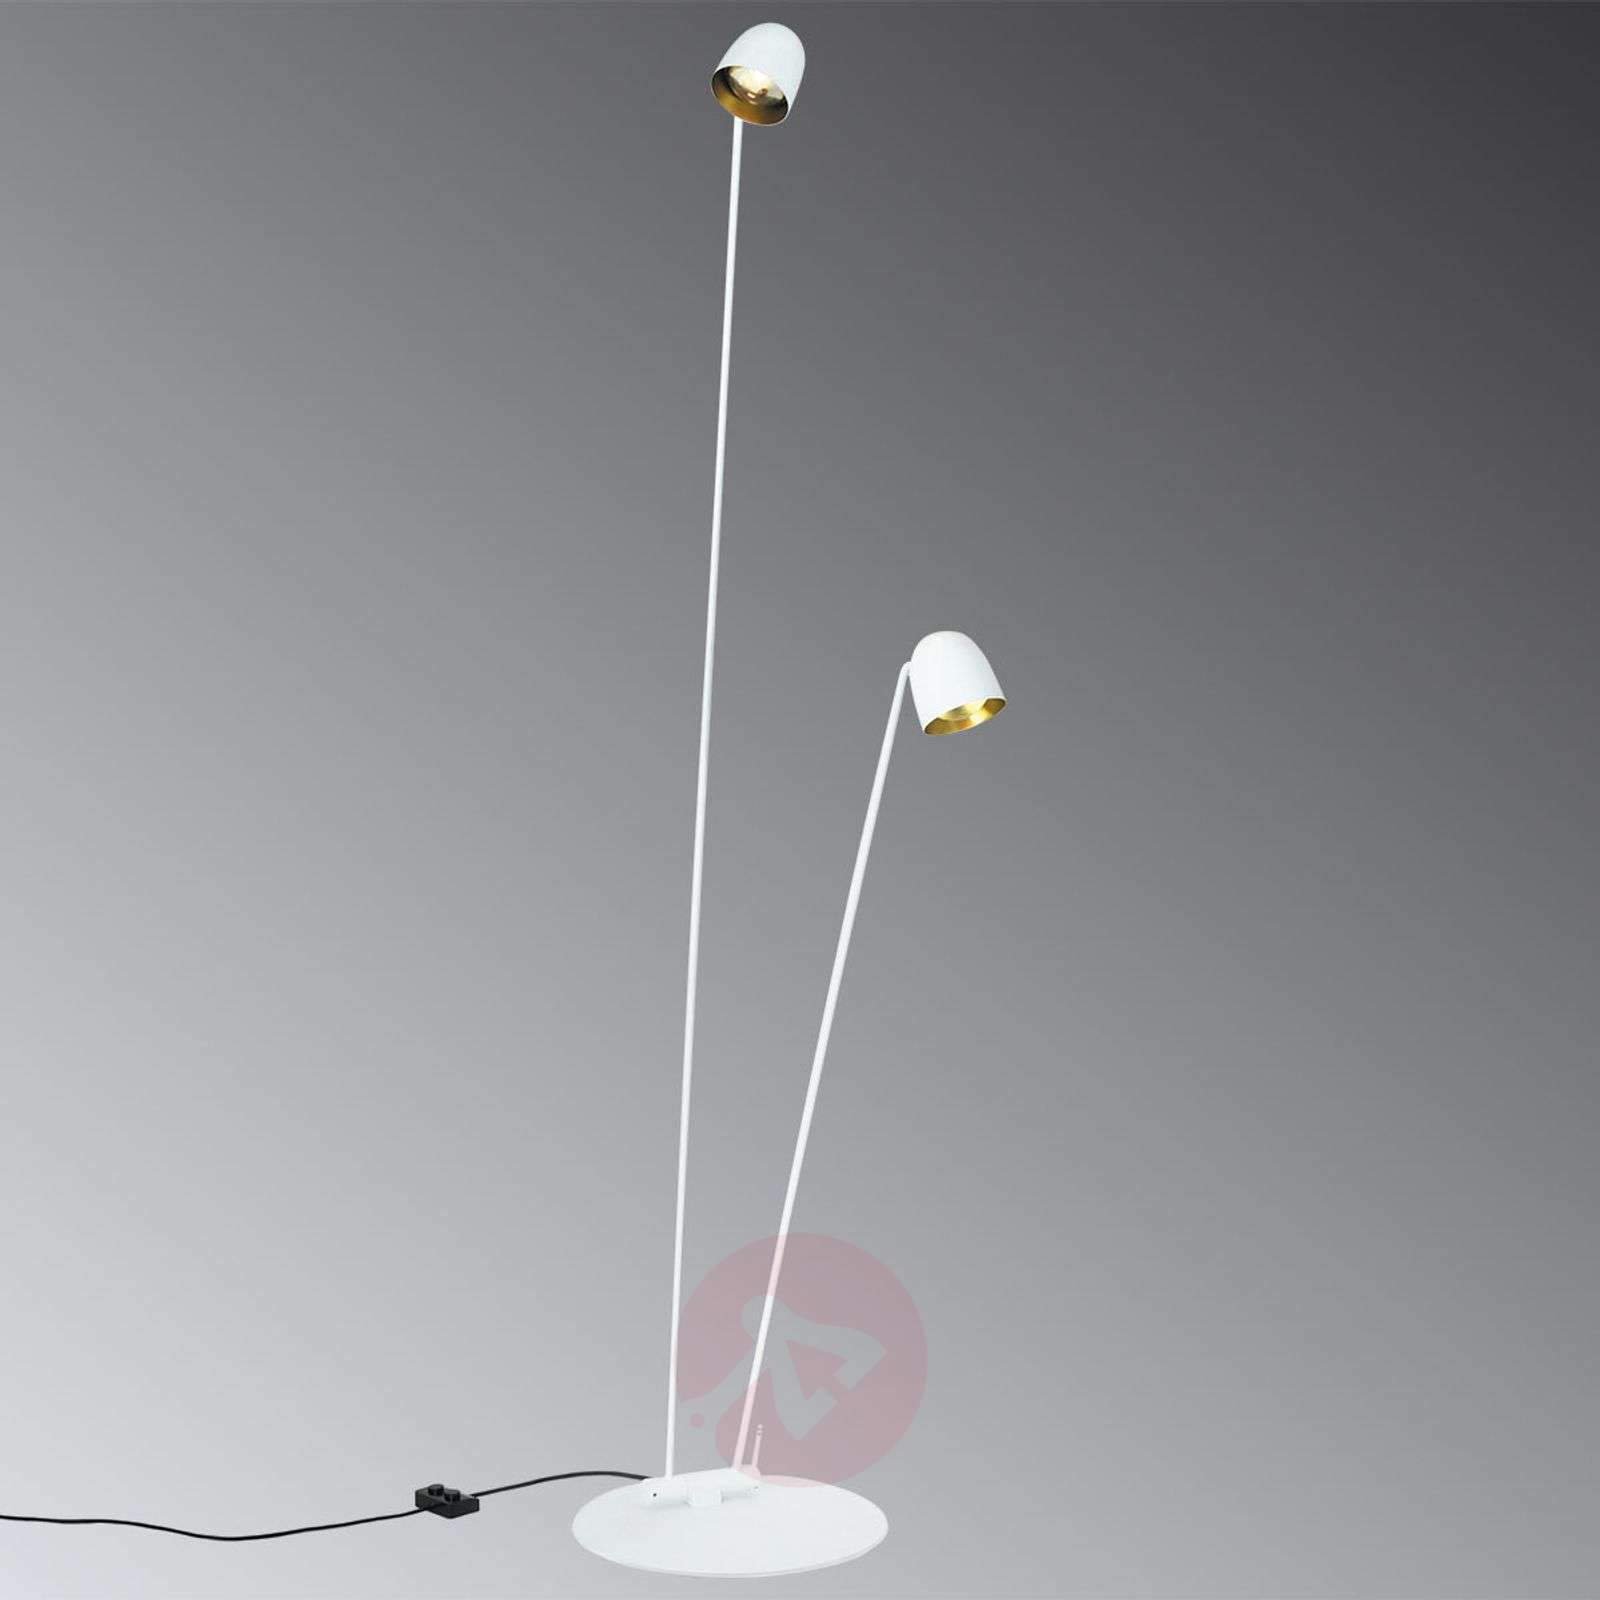 Lampadaire LED orientable Speers F blanc